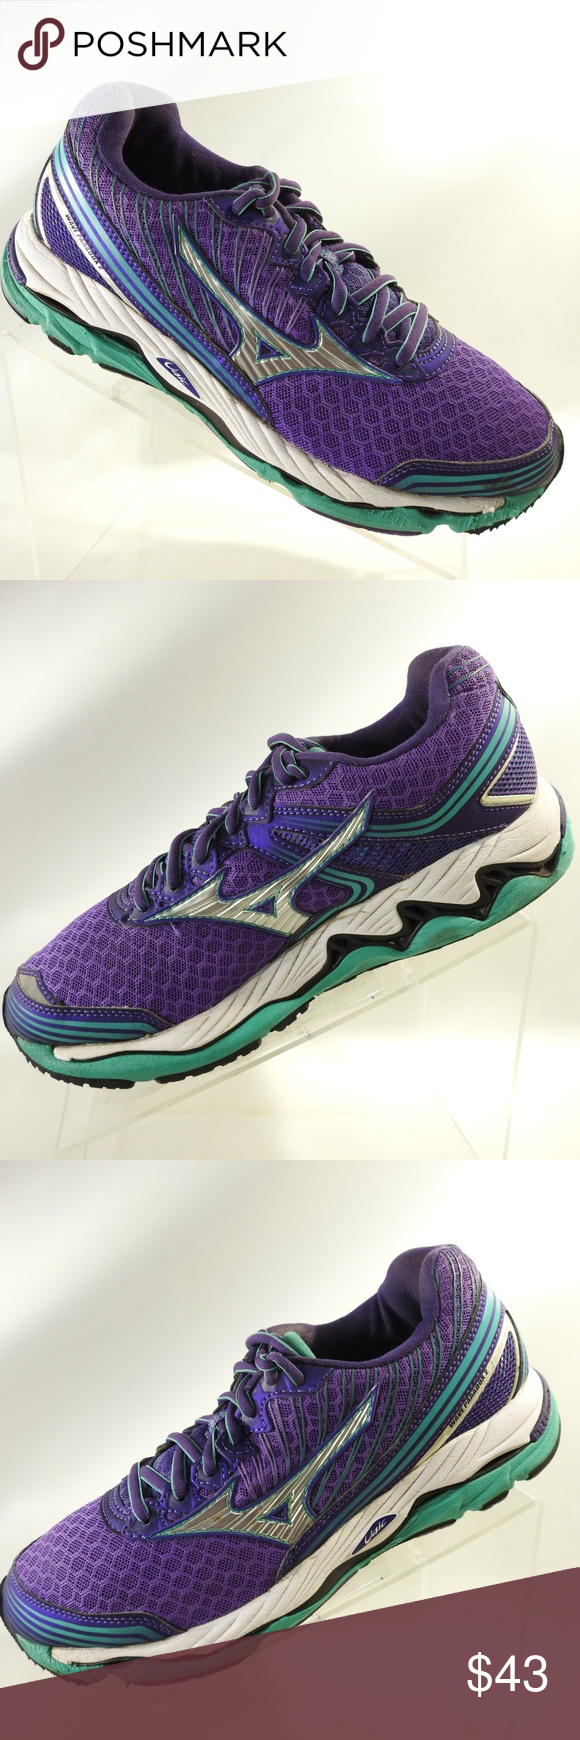 073c1c4a67e5 Mizuno Wave Paradox 2 Size 10 Shoes For Women Mizuno Wave Paradox 2  J1GD154004 Size 10 M Purple Running Shoes For Women $136 Please note that  many of our ...